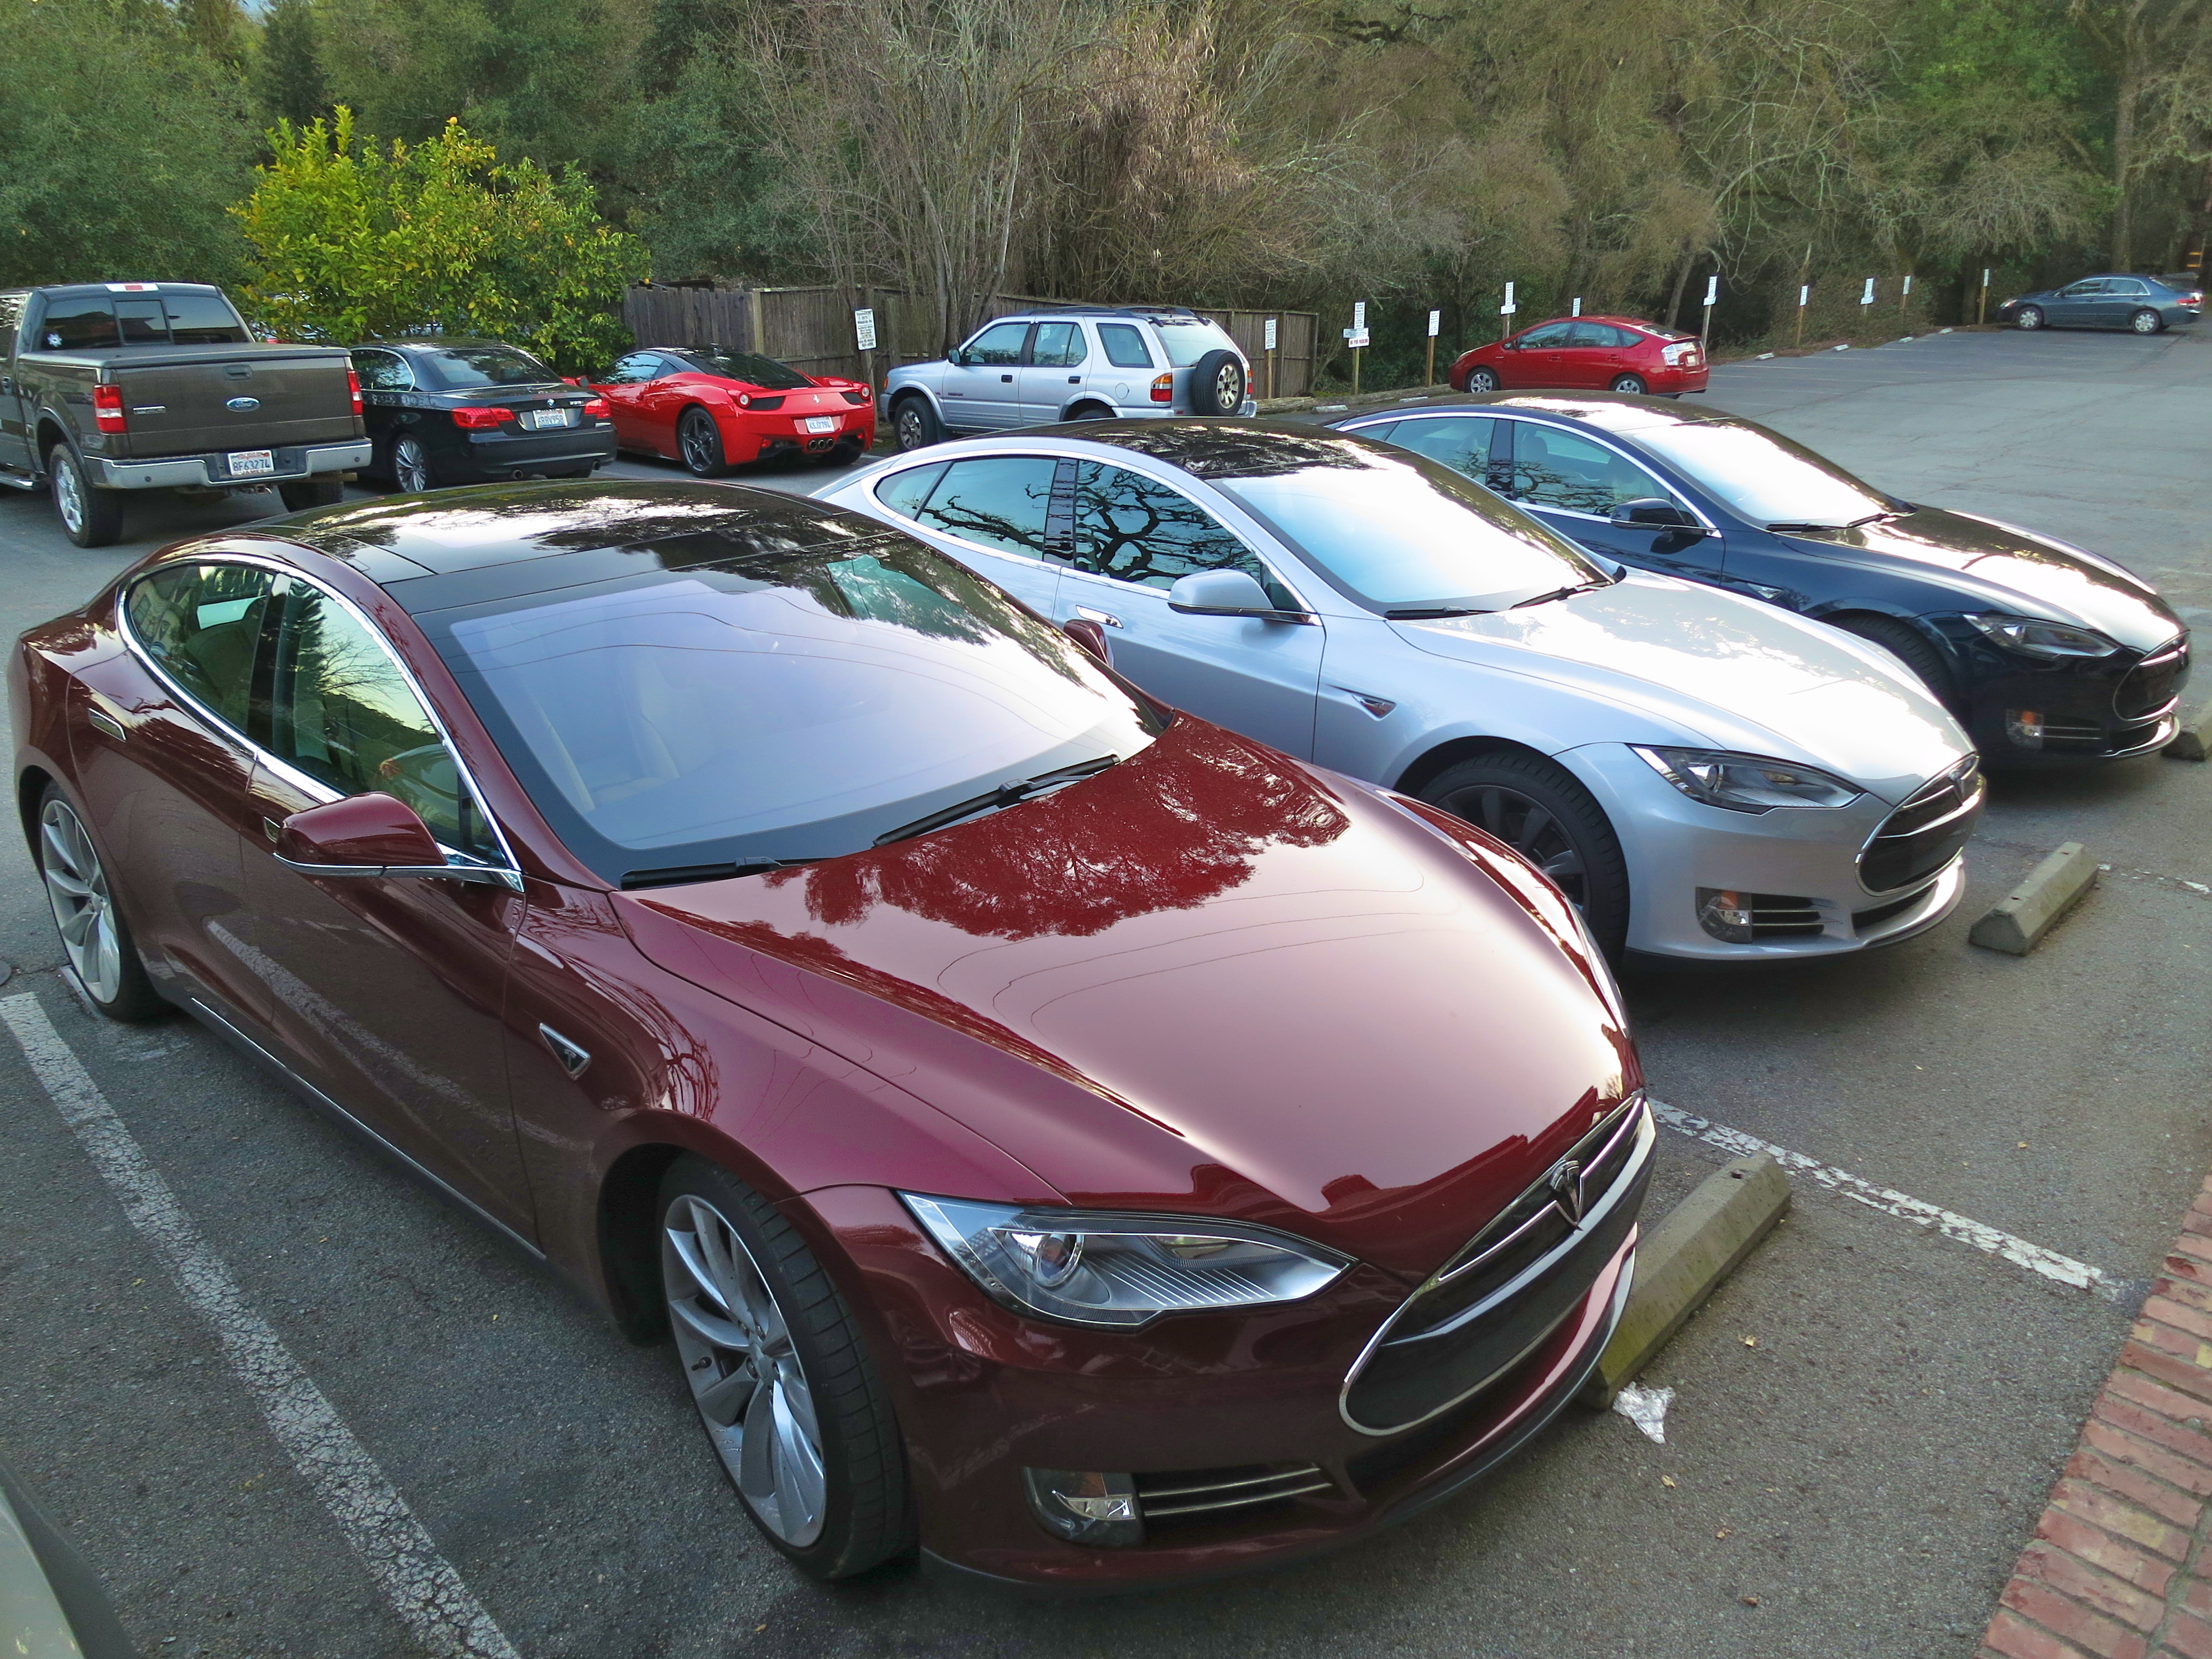 File green tesla model s at muir woods trimmed additionally Galerie in addition Jaguar Pace Concept Bev also 1050422 transformers 3 Has Another On Set Accident The Crash Of The Bumblebee further File Red  White and Blue  Tesla Model S. on tesla model 3 preview